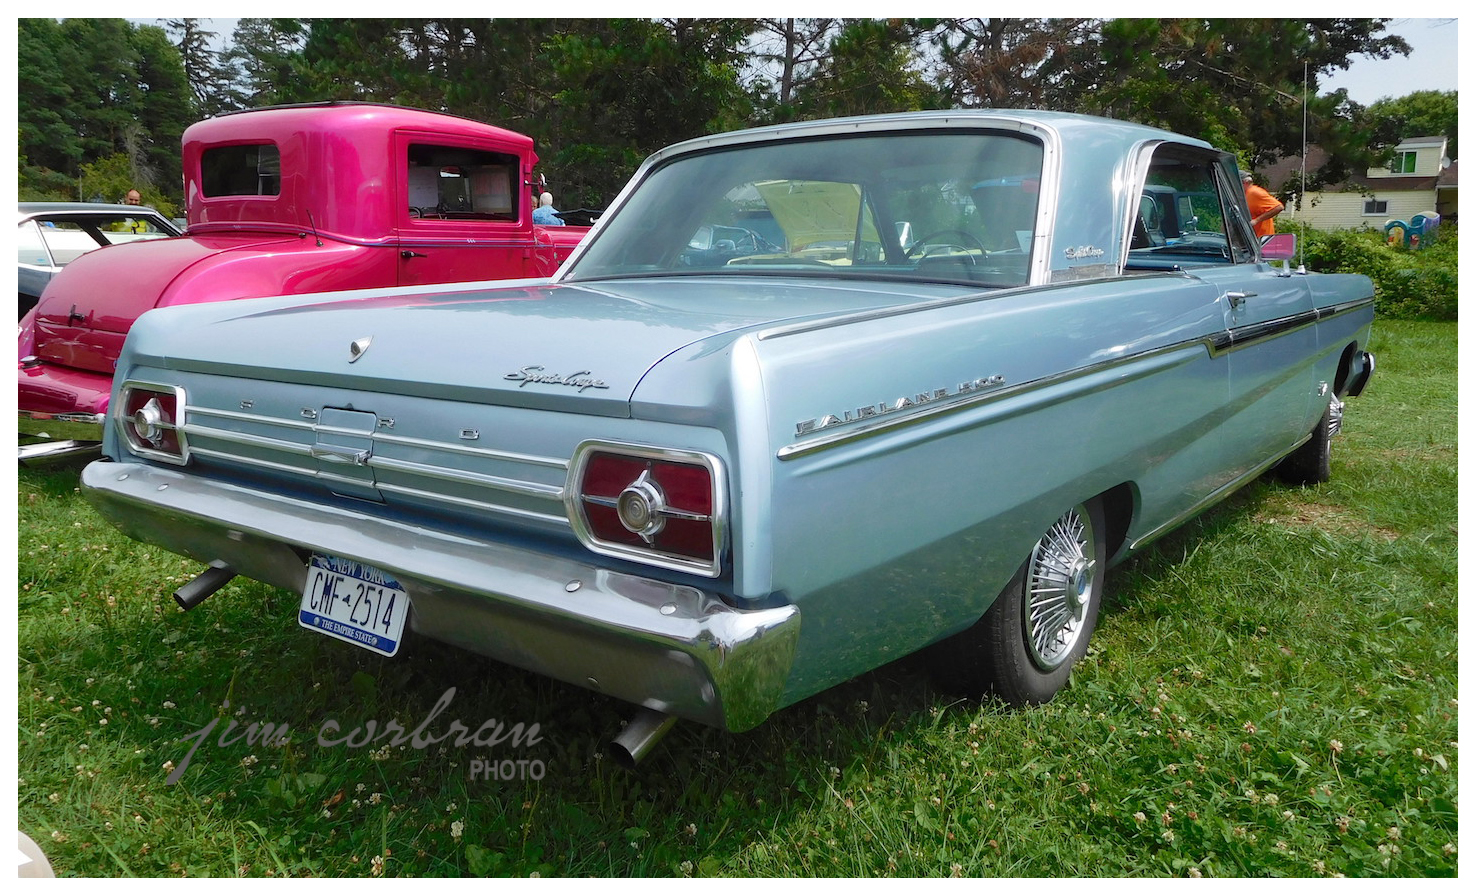 The sports coupe was the top of the line fairlane in 65 this one has the optional 289 v8 as well as the 45 80 wire wheel covers